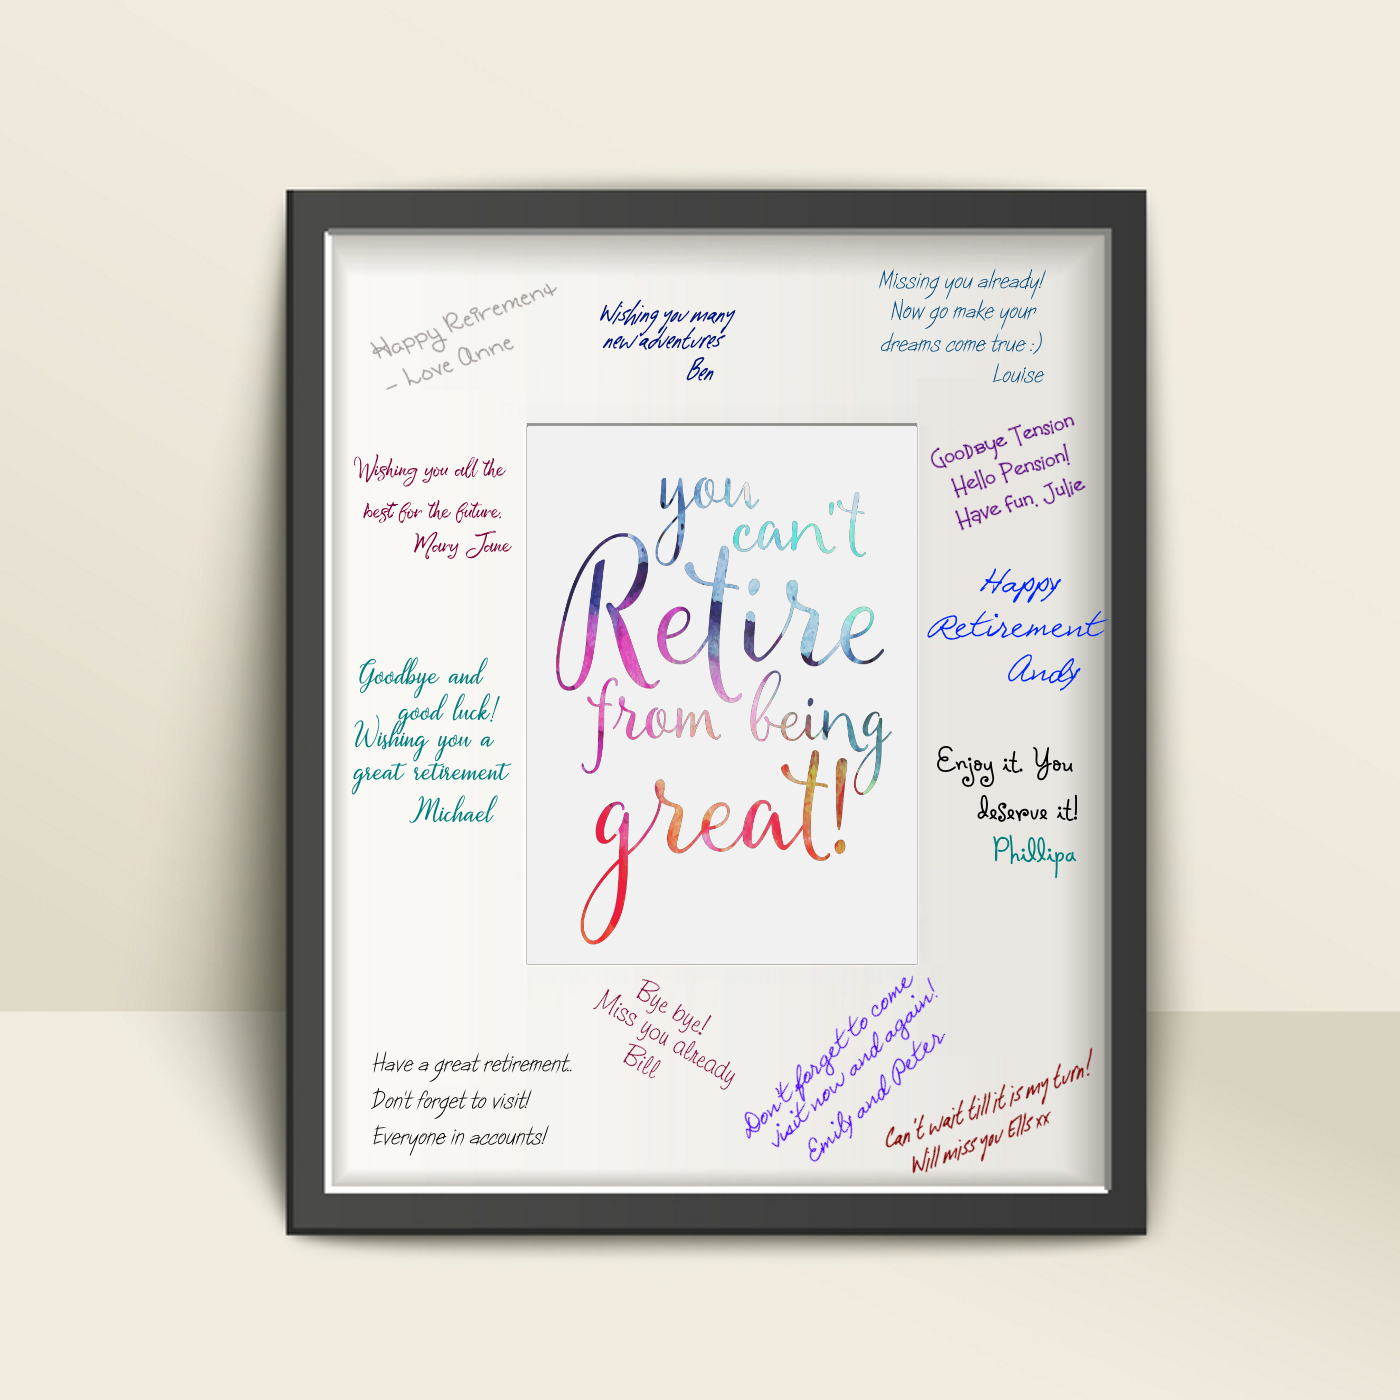 You can't retire from being great - gift print with large mat for signing